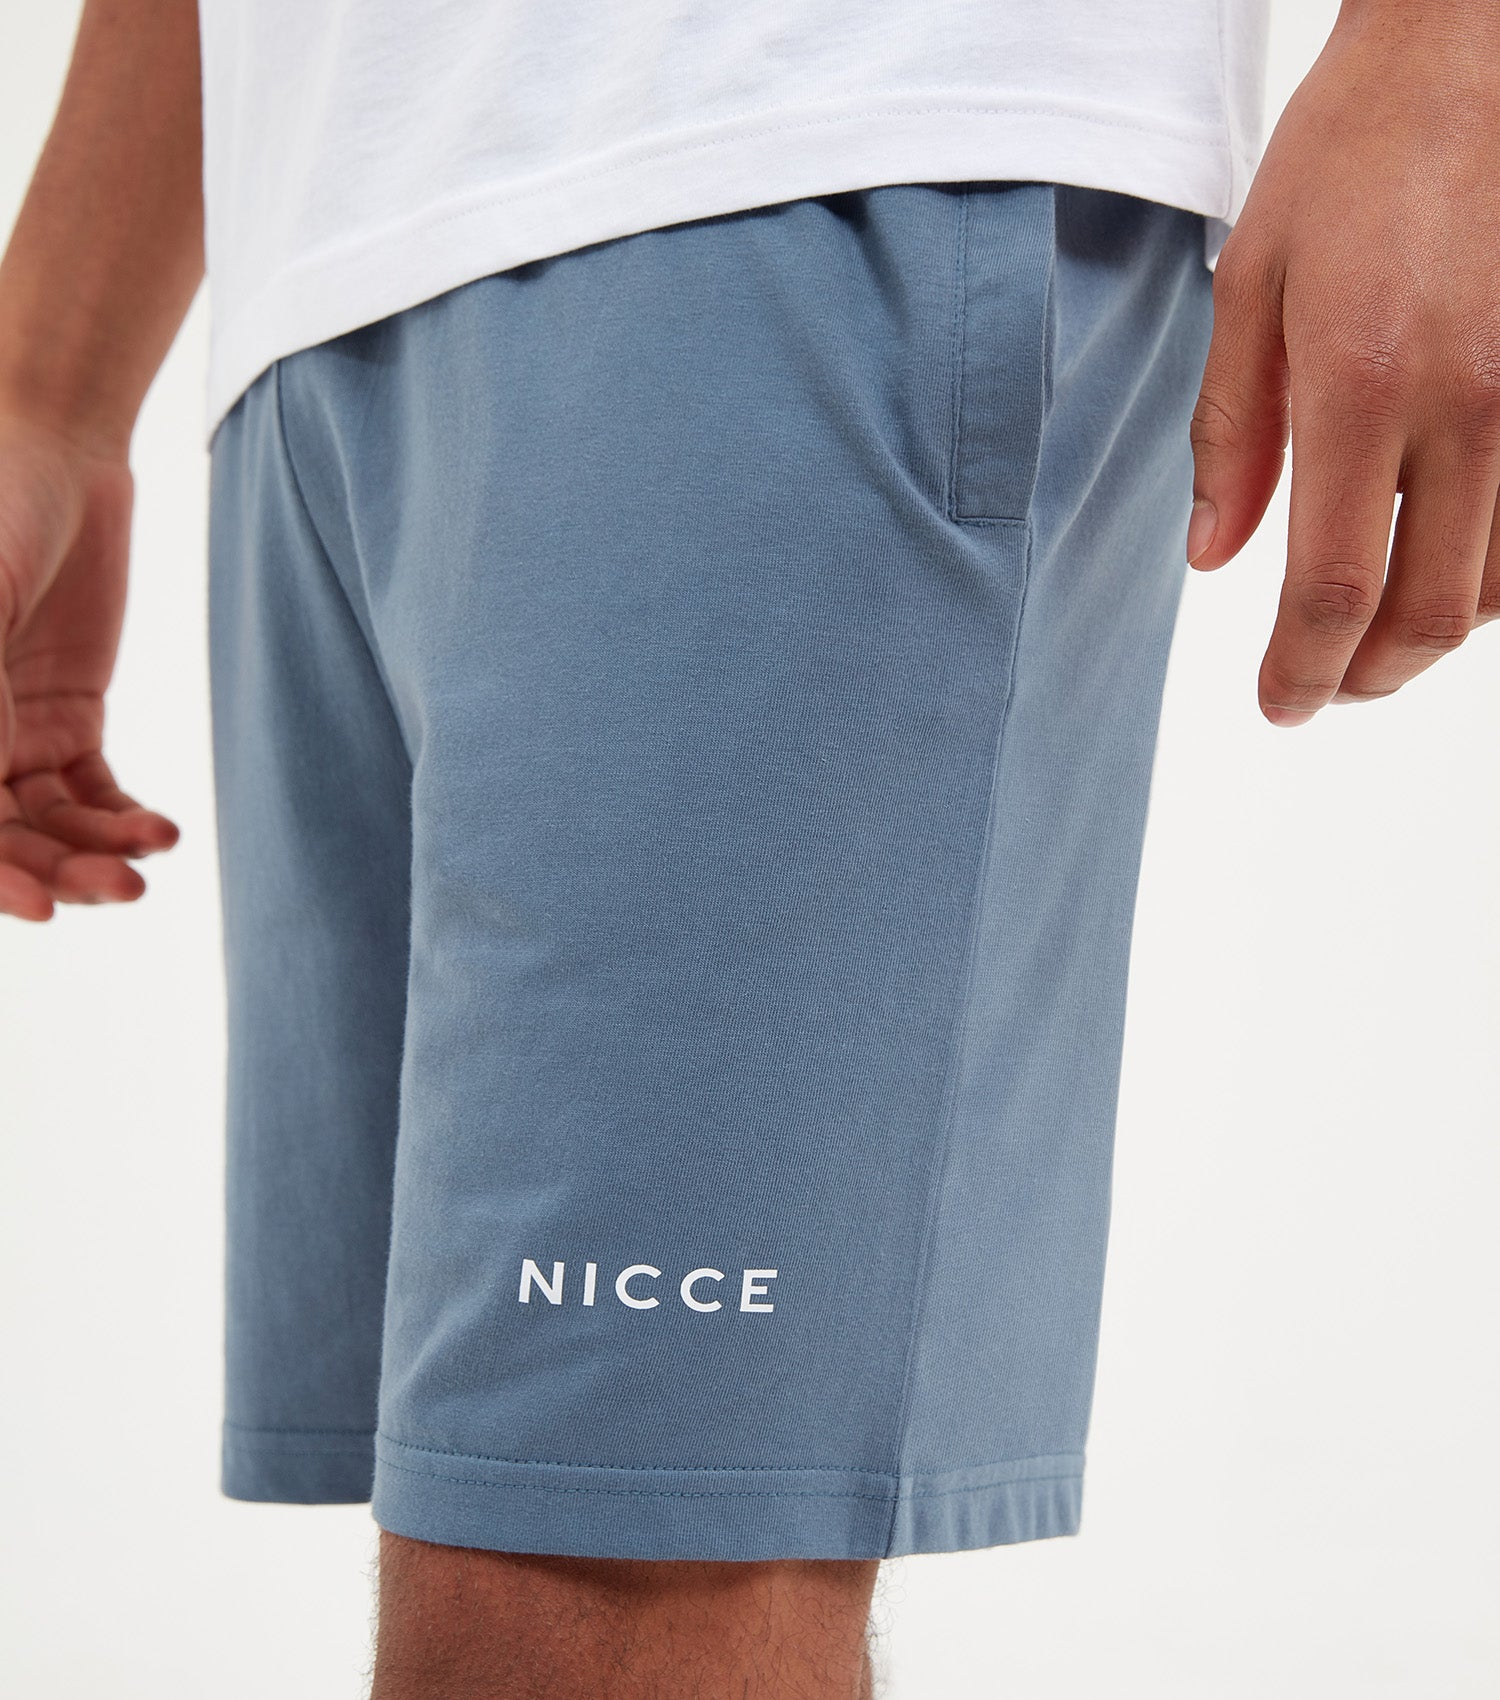 NICCE Mens Taro Shorts | Blue Mirage, Bottoms